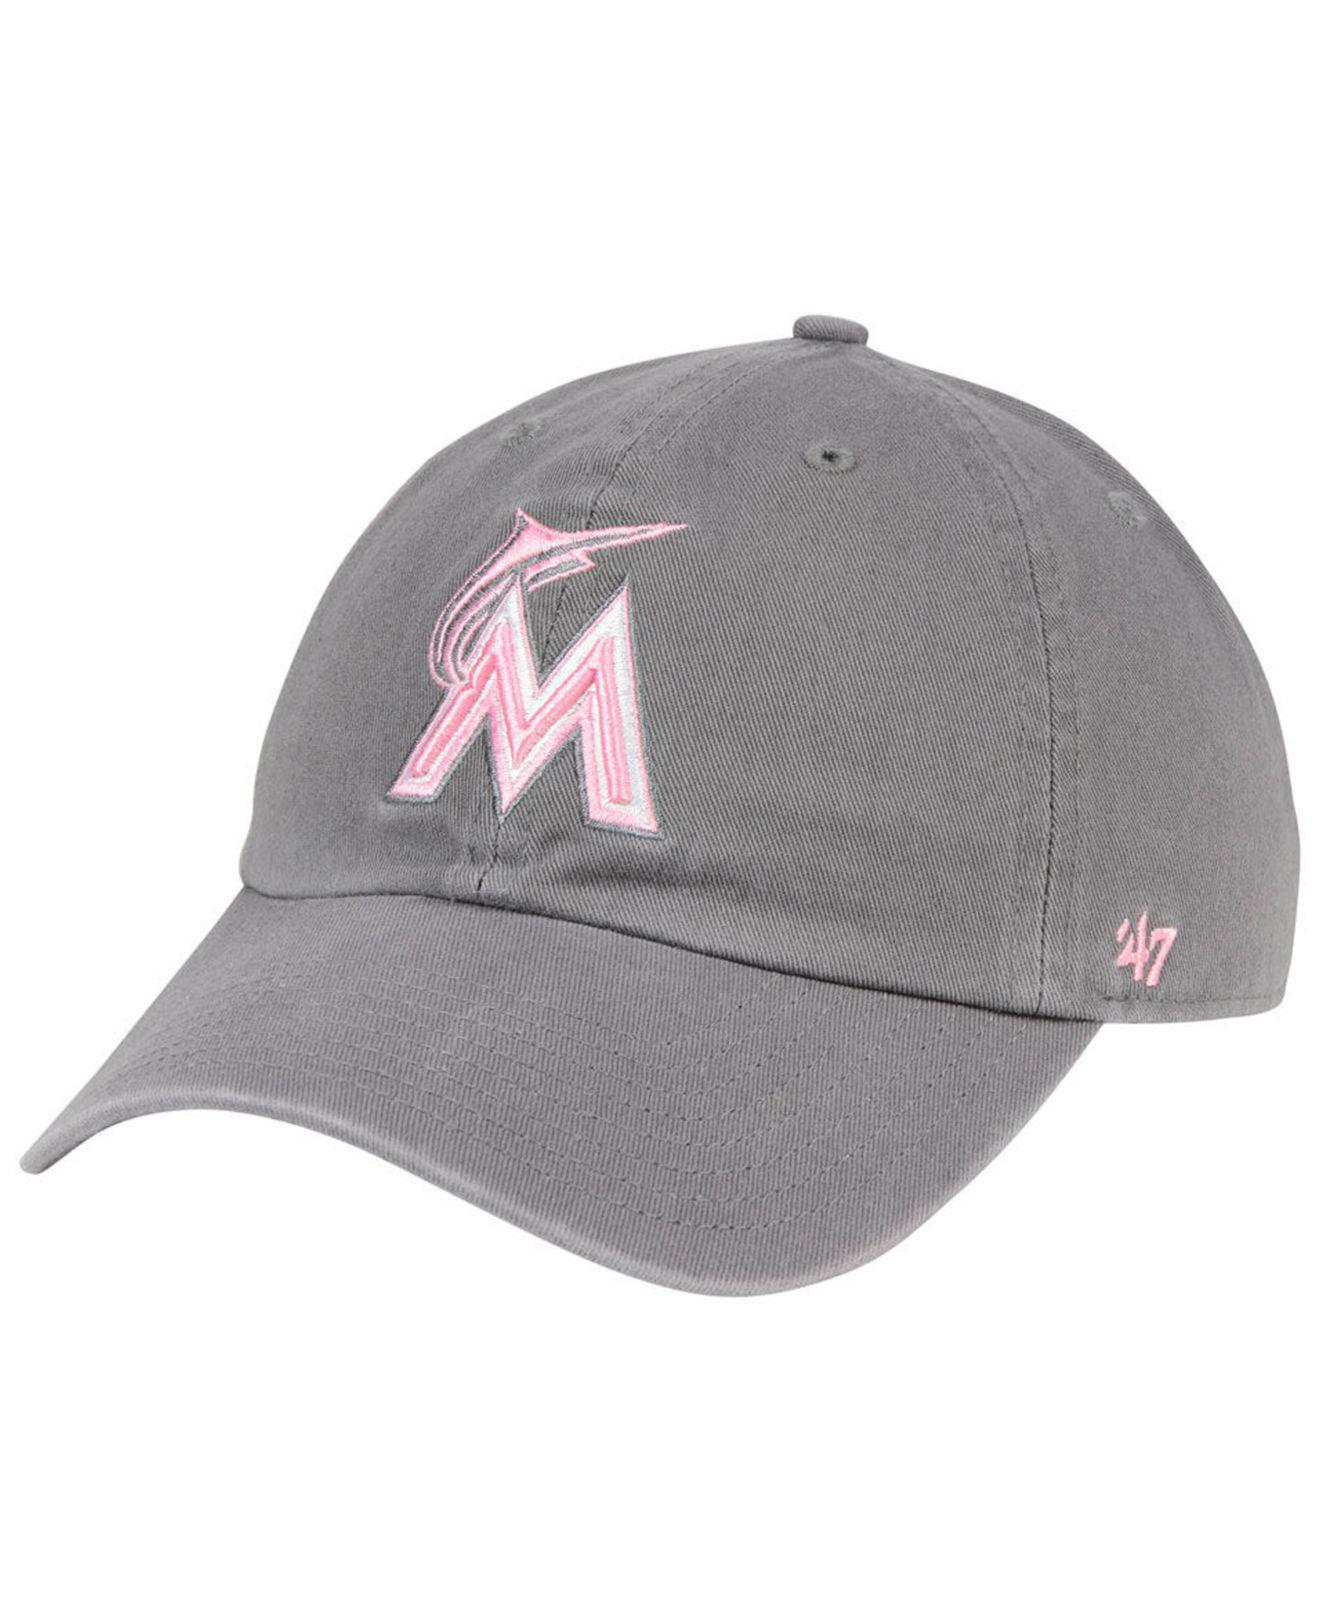 outlet store 4f941 317da ... coupon for 47 brand. womens miami marlins dark gray pink clean up cap  e2113 19a53